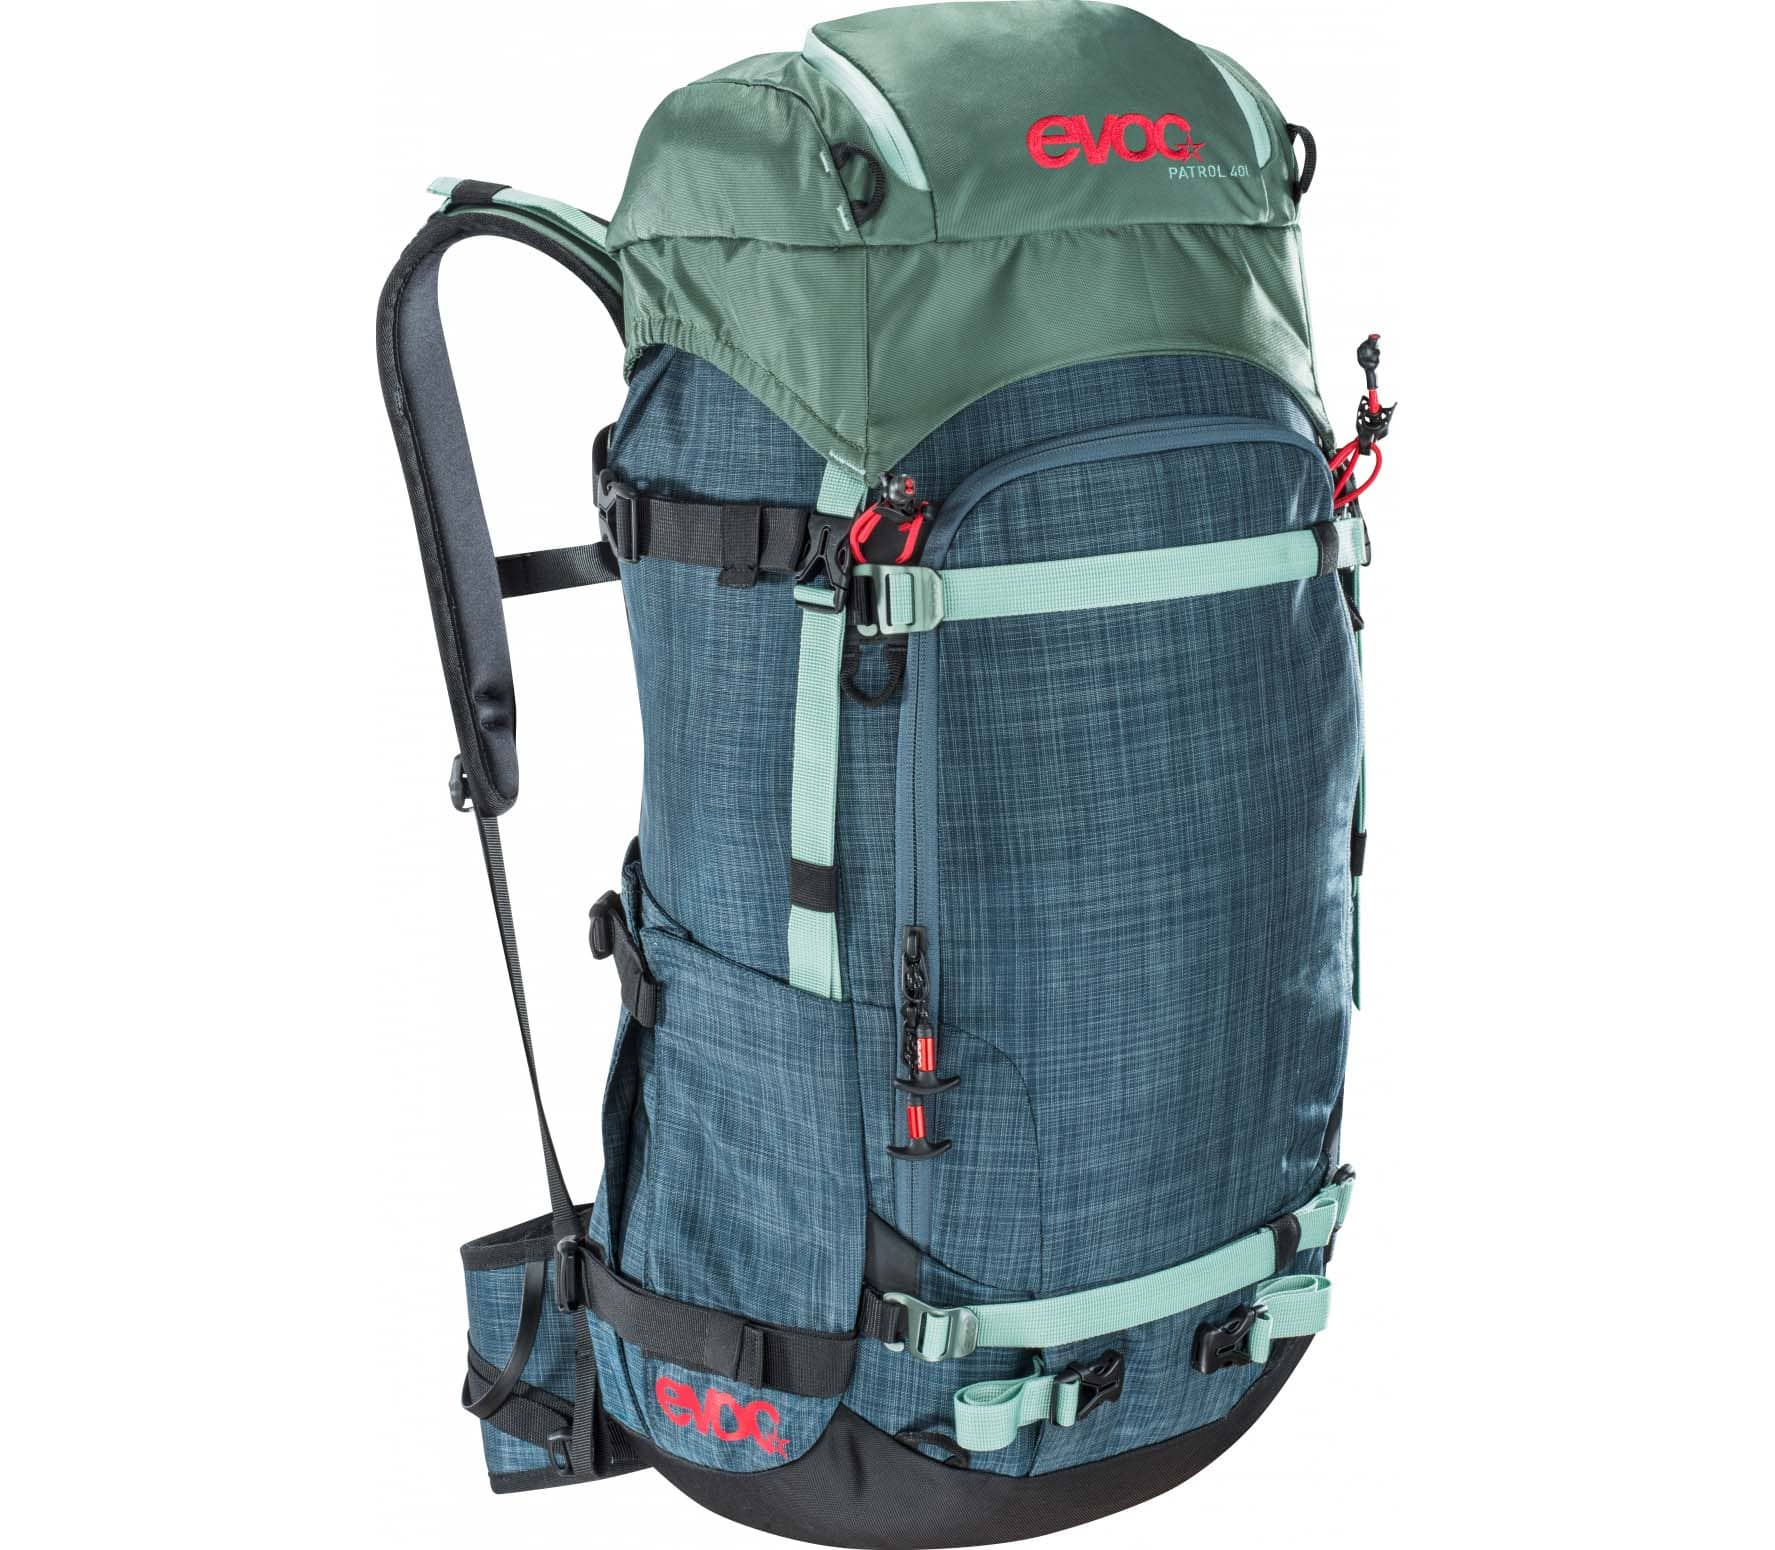 EVOC - Patrol 40l touring backpack (blue)